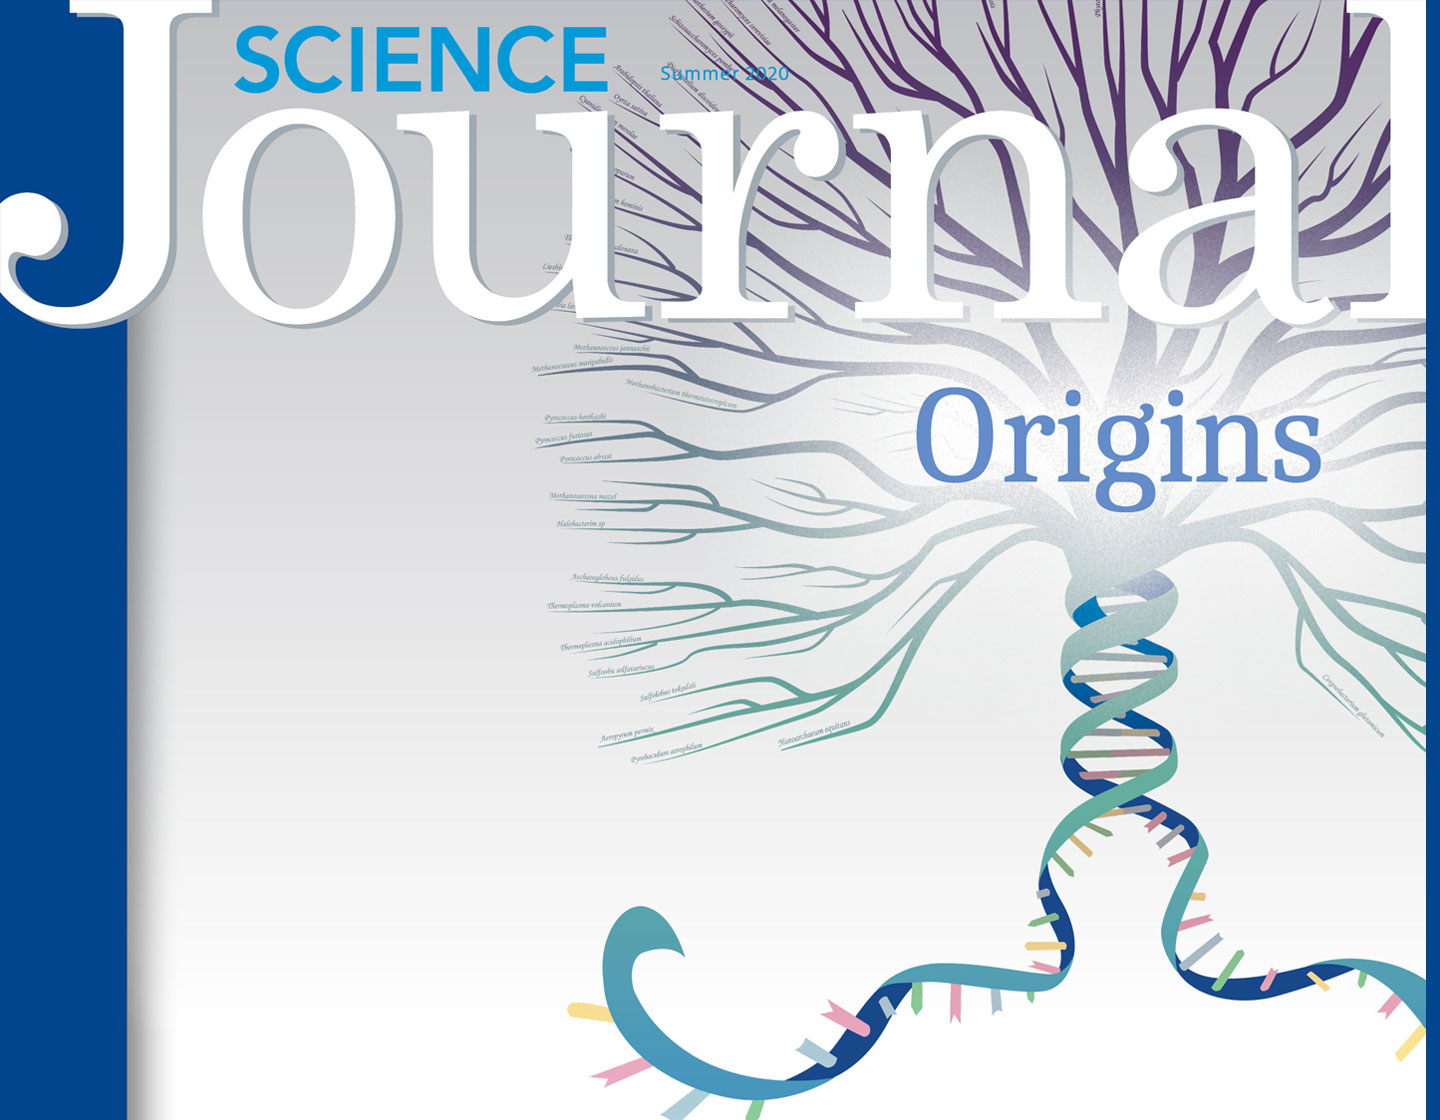 Magazine cover image with phylogenetic tree